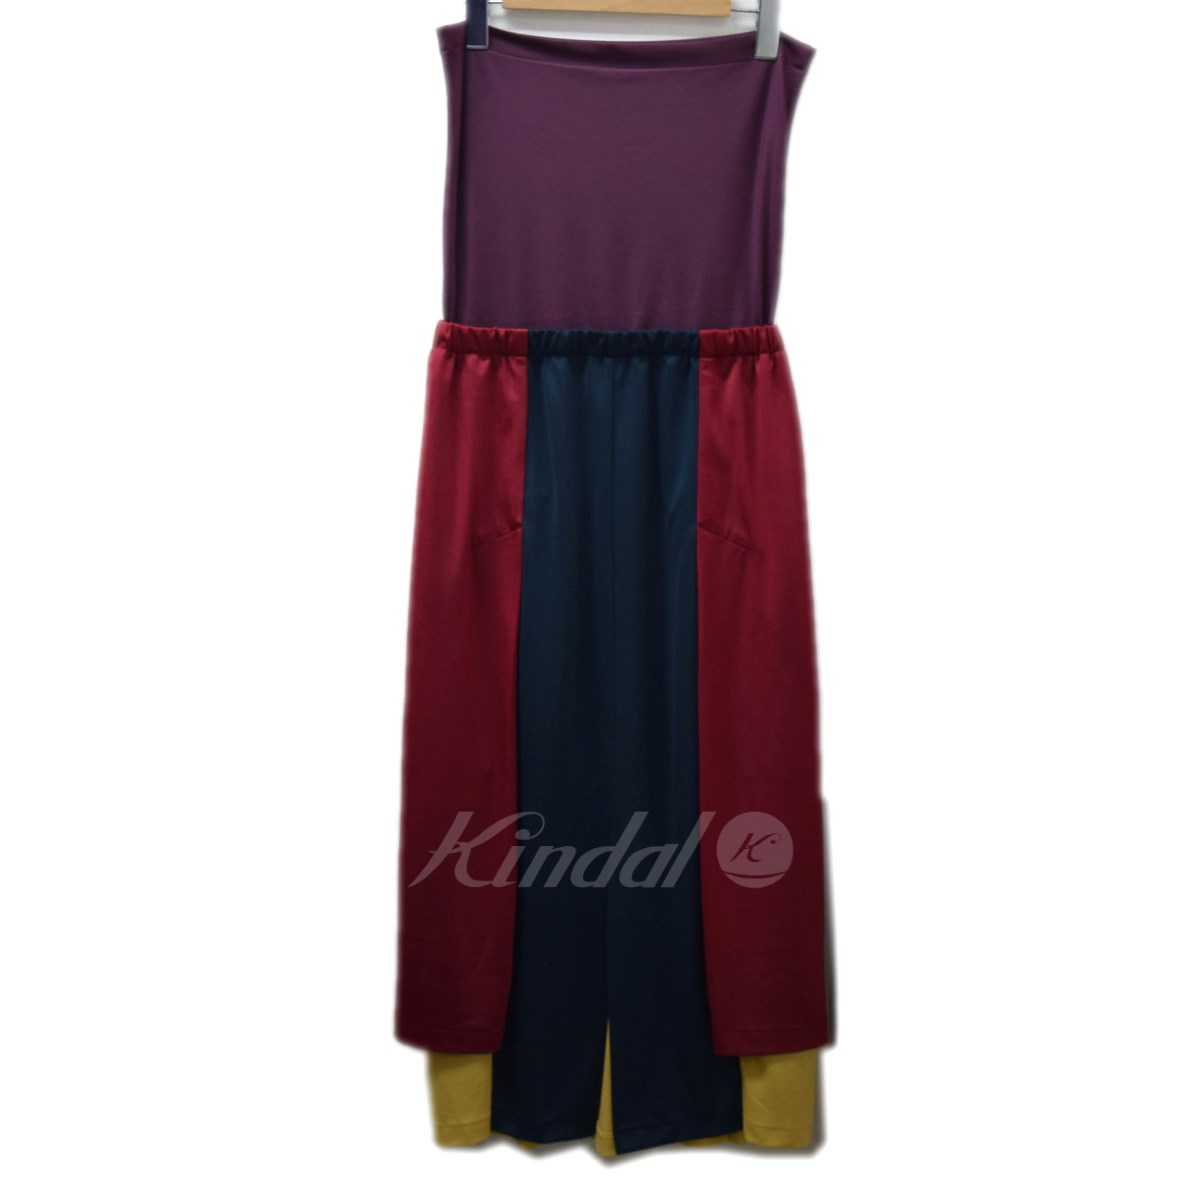 【中古】TOGA PULLA 2017SS JERSEY DRESS 2WAY 【送料無料】 【001638】 【KIND1550】